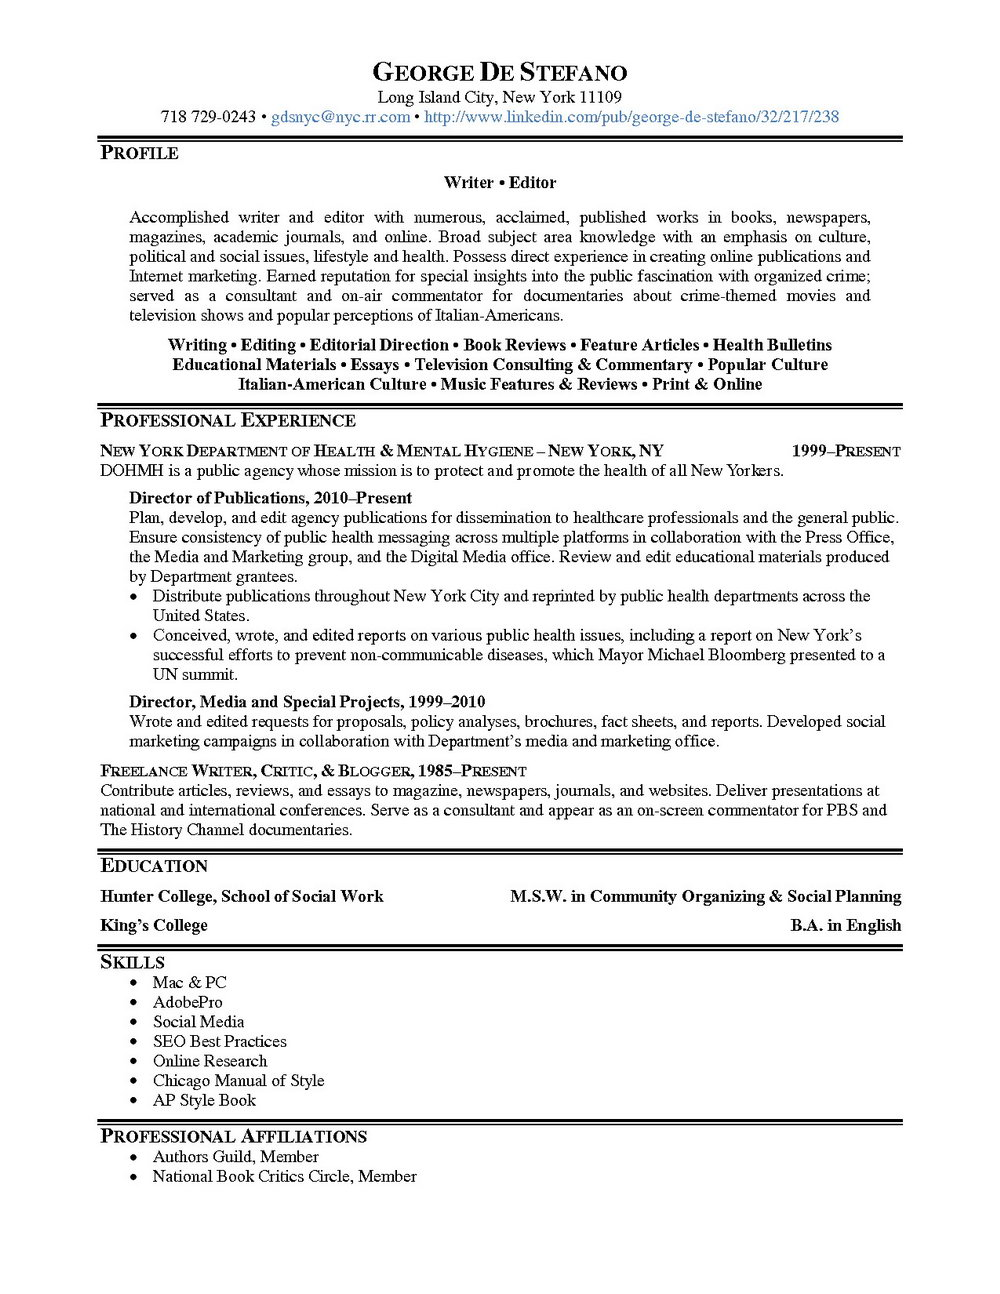 resume writers in gaithersburg md